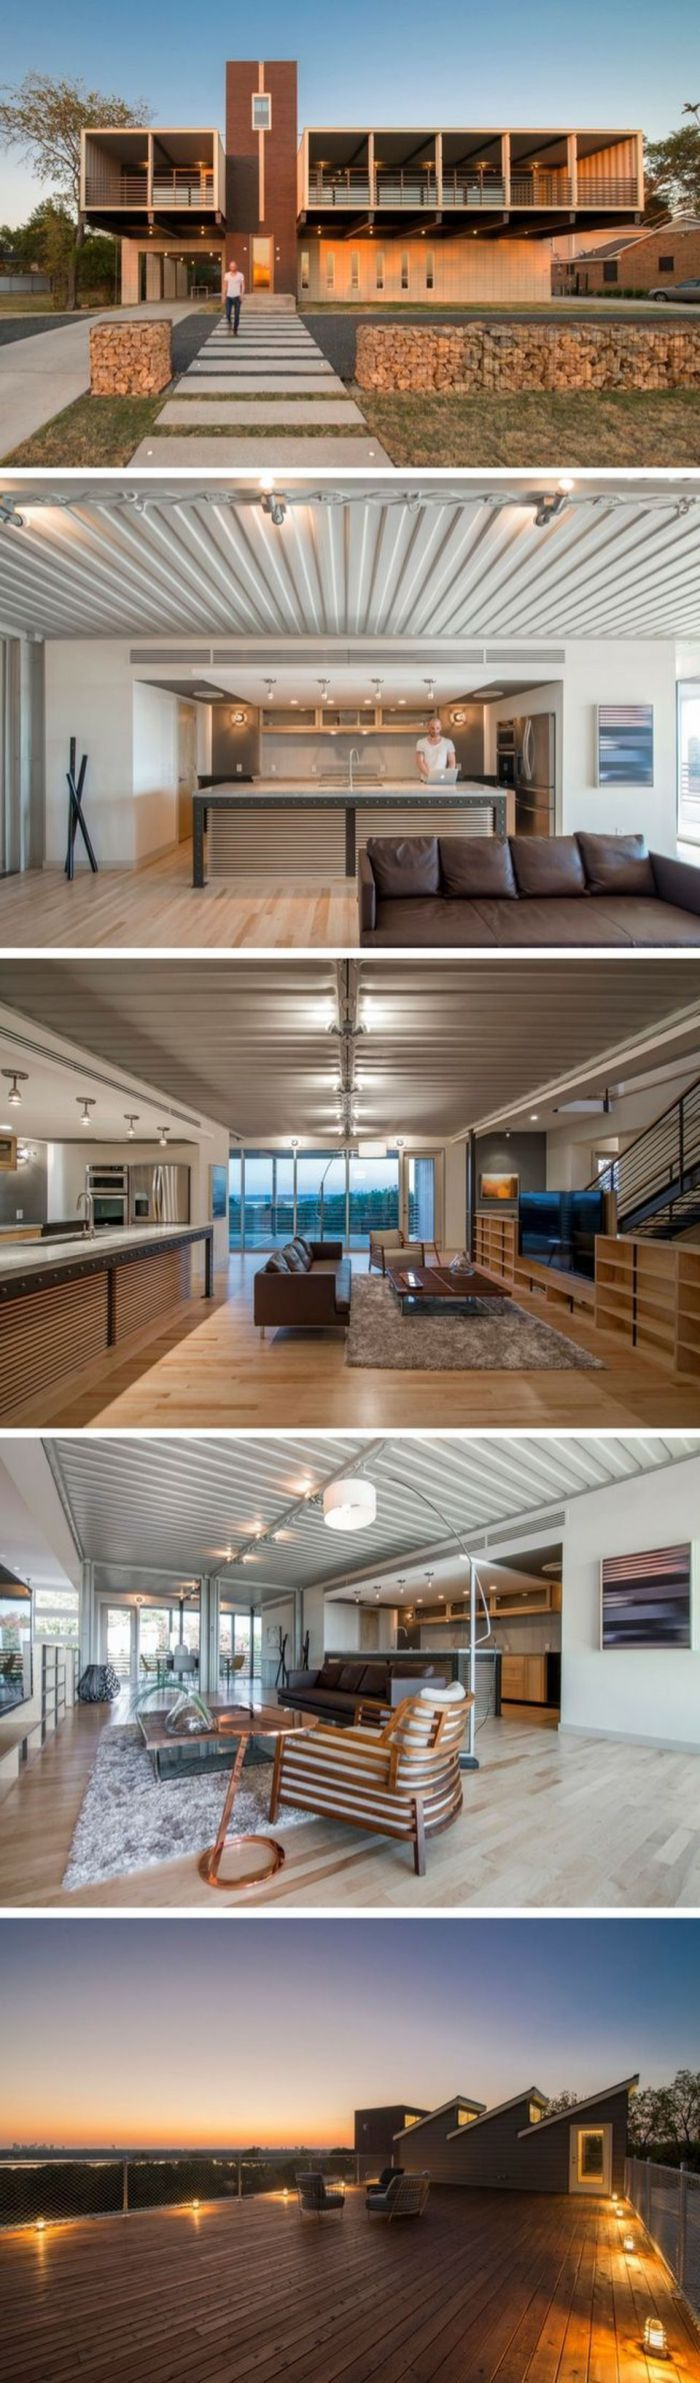 Best shipping container house design ideas 87   Shipping Container ...